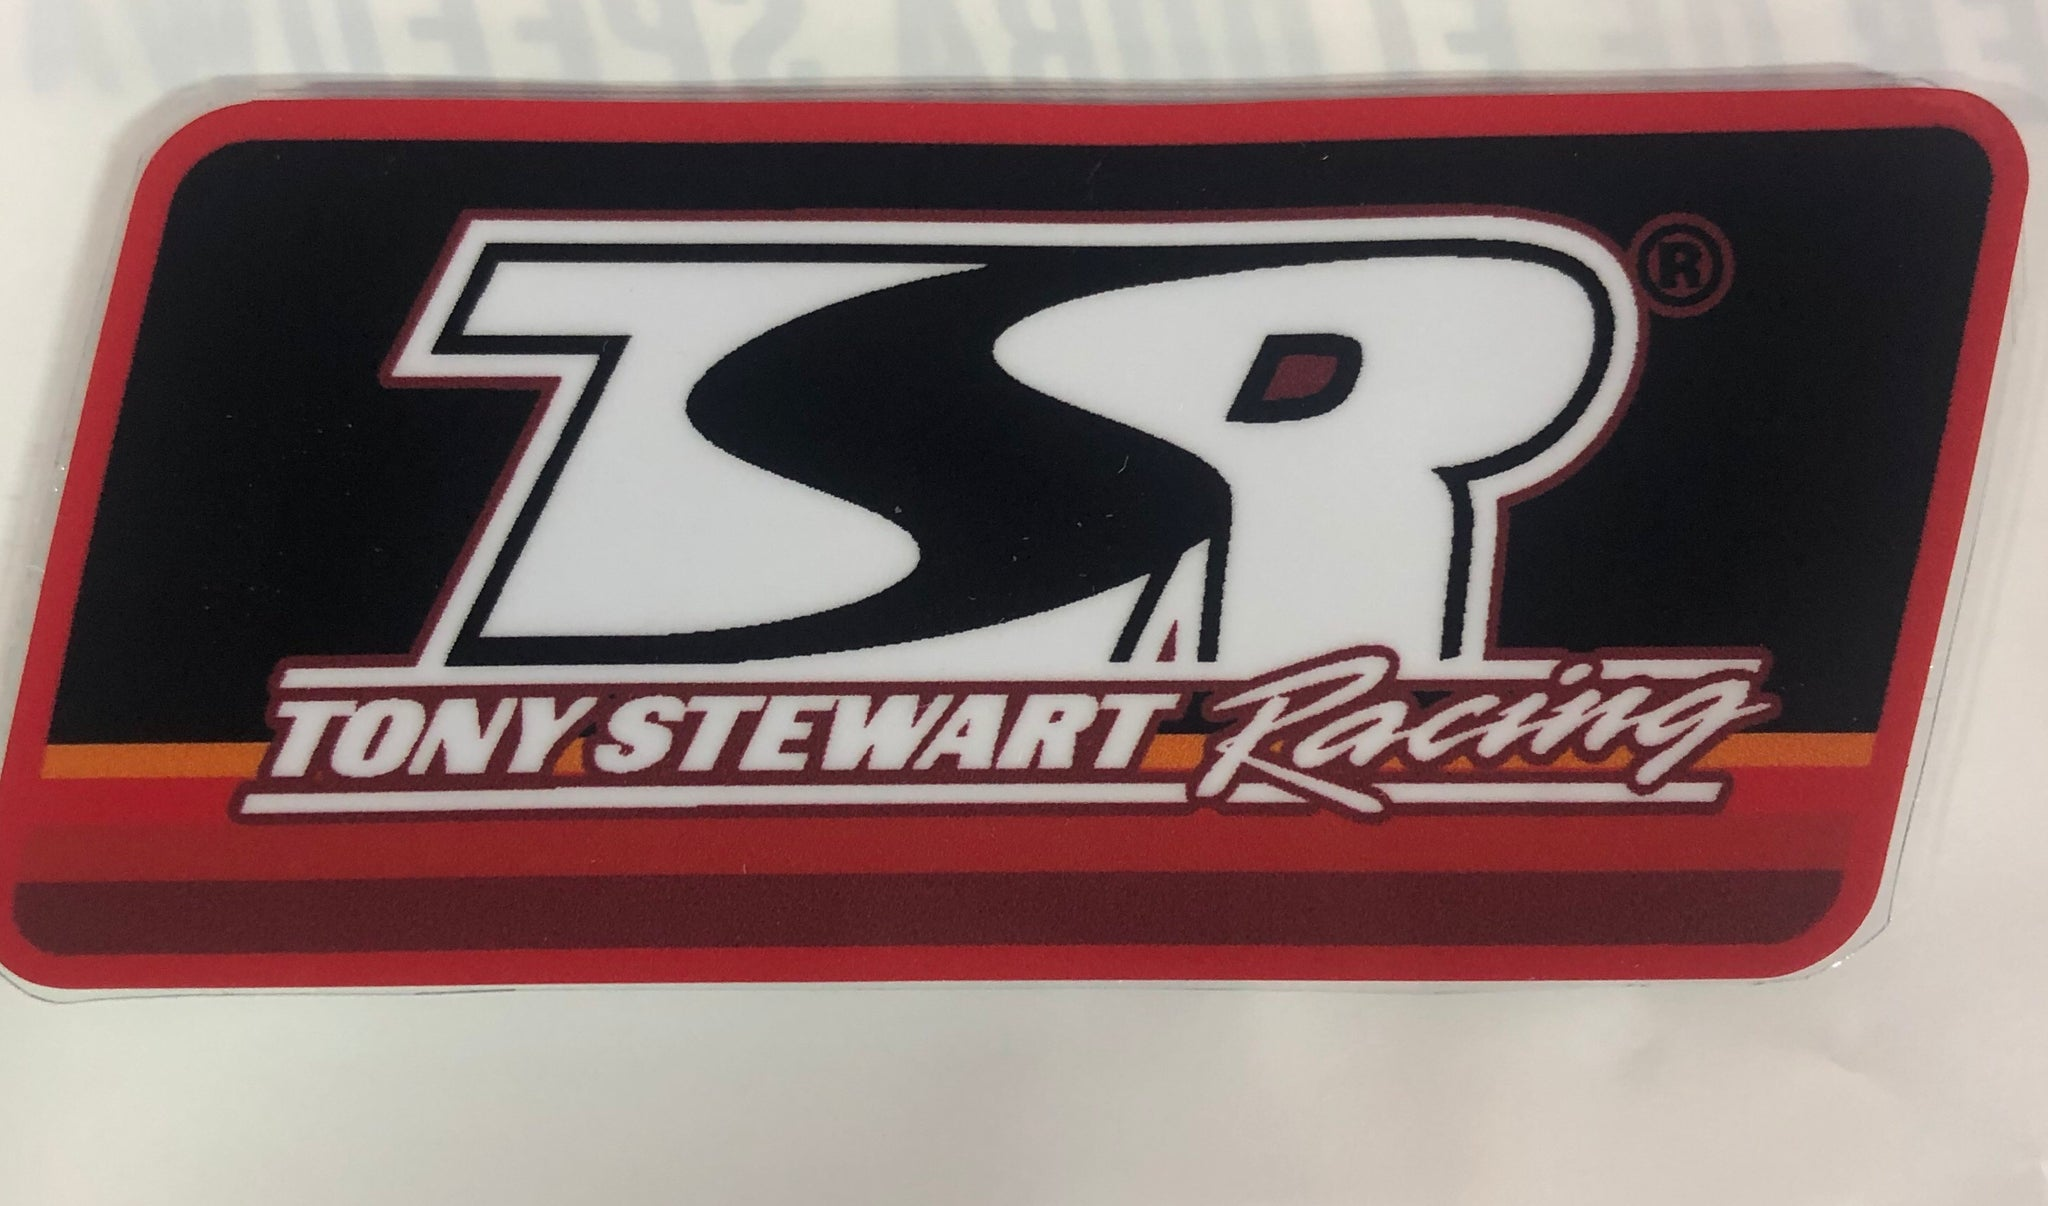 Retro TSR Decal (4029884923982)